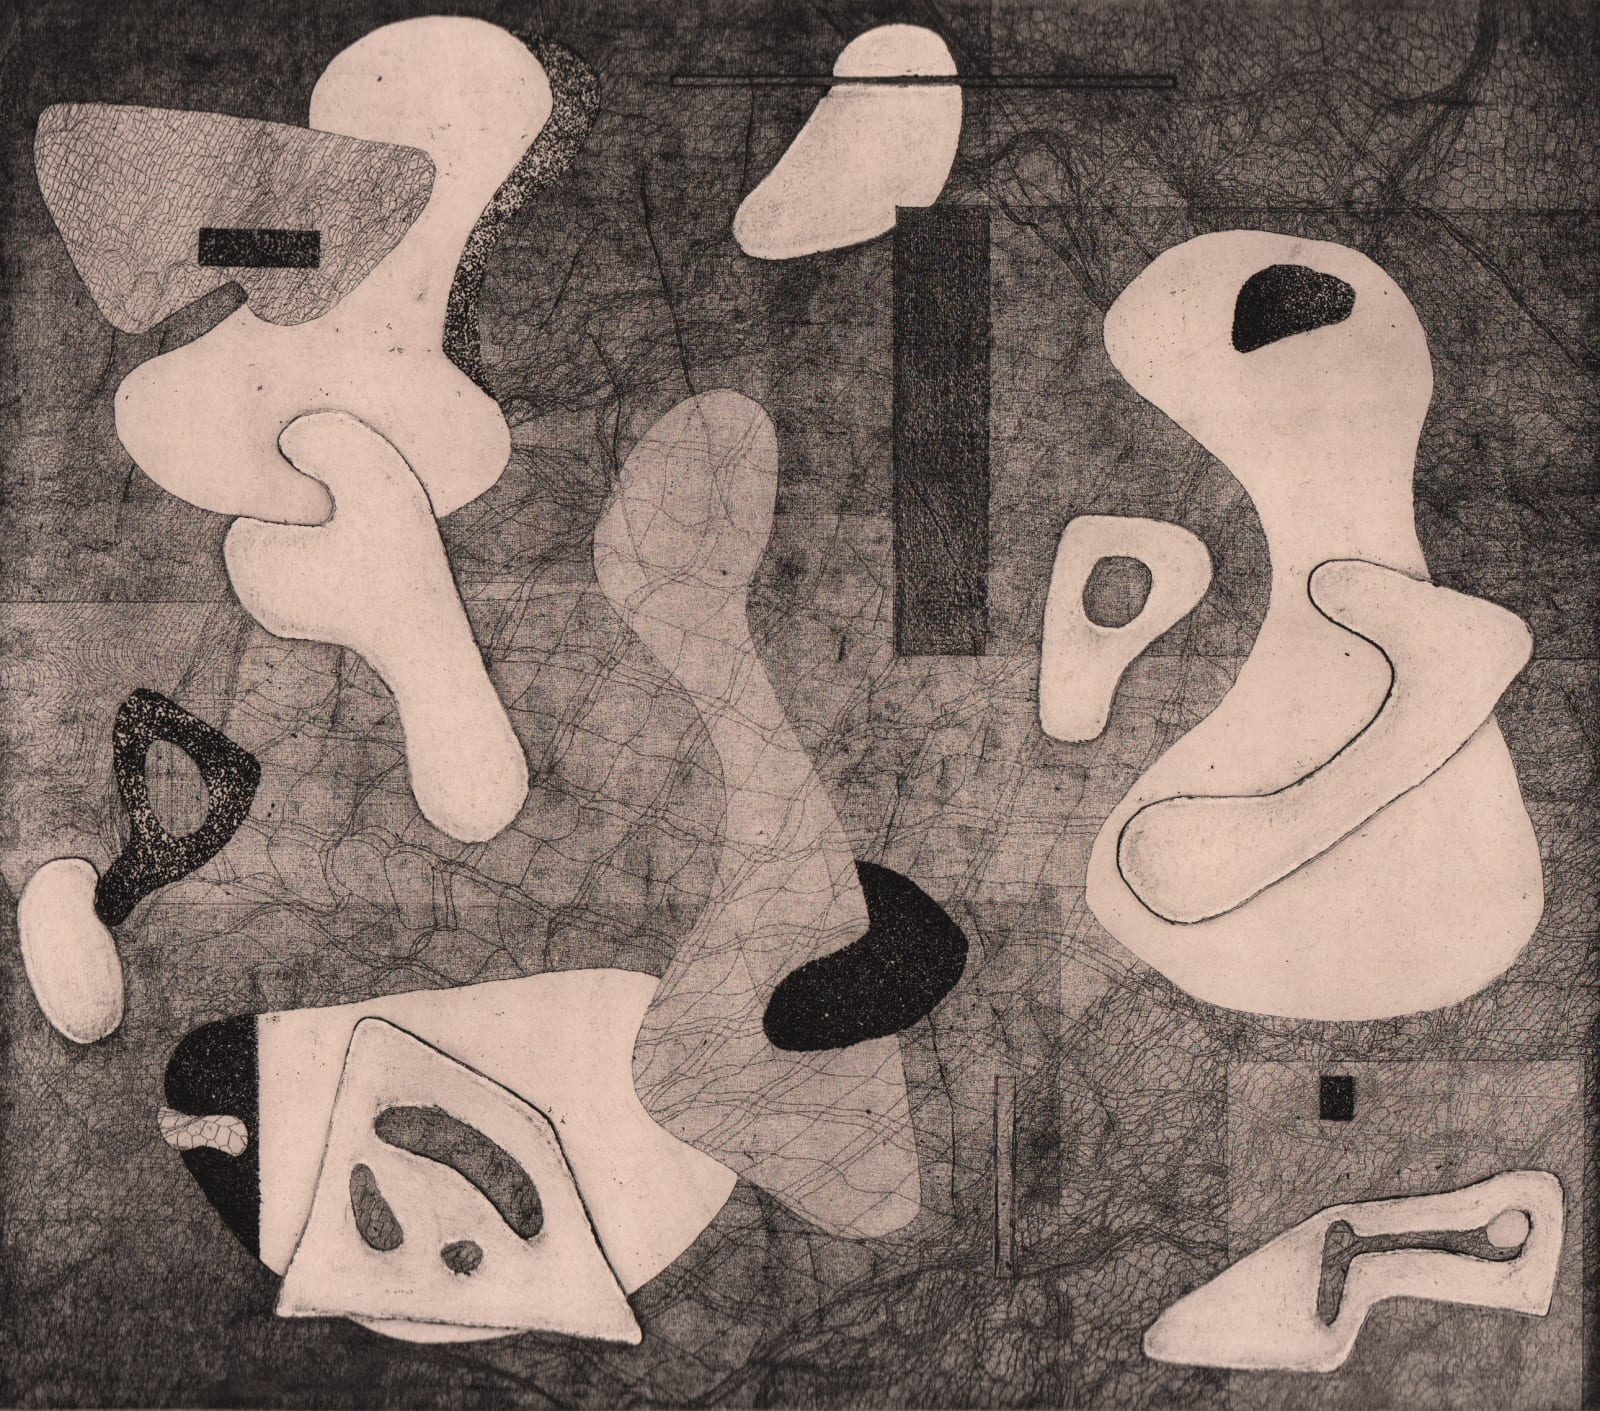 Alice Mason, Interference of Closed Forms, 1945